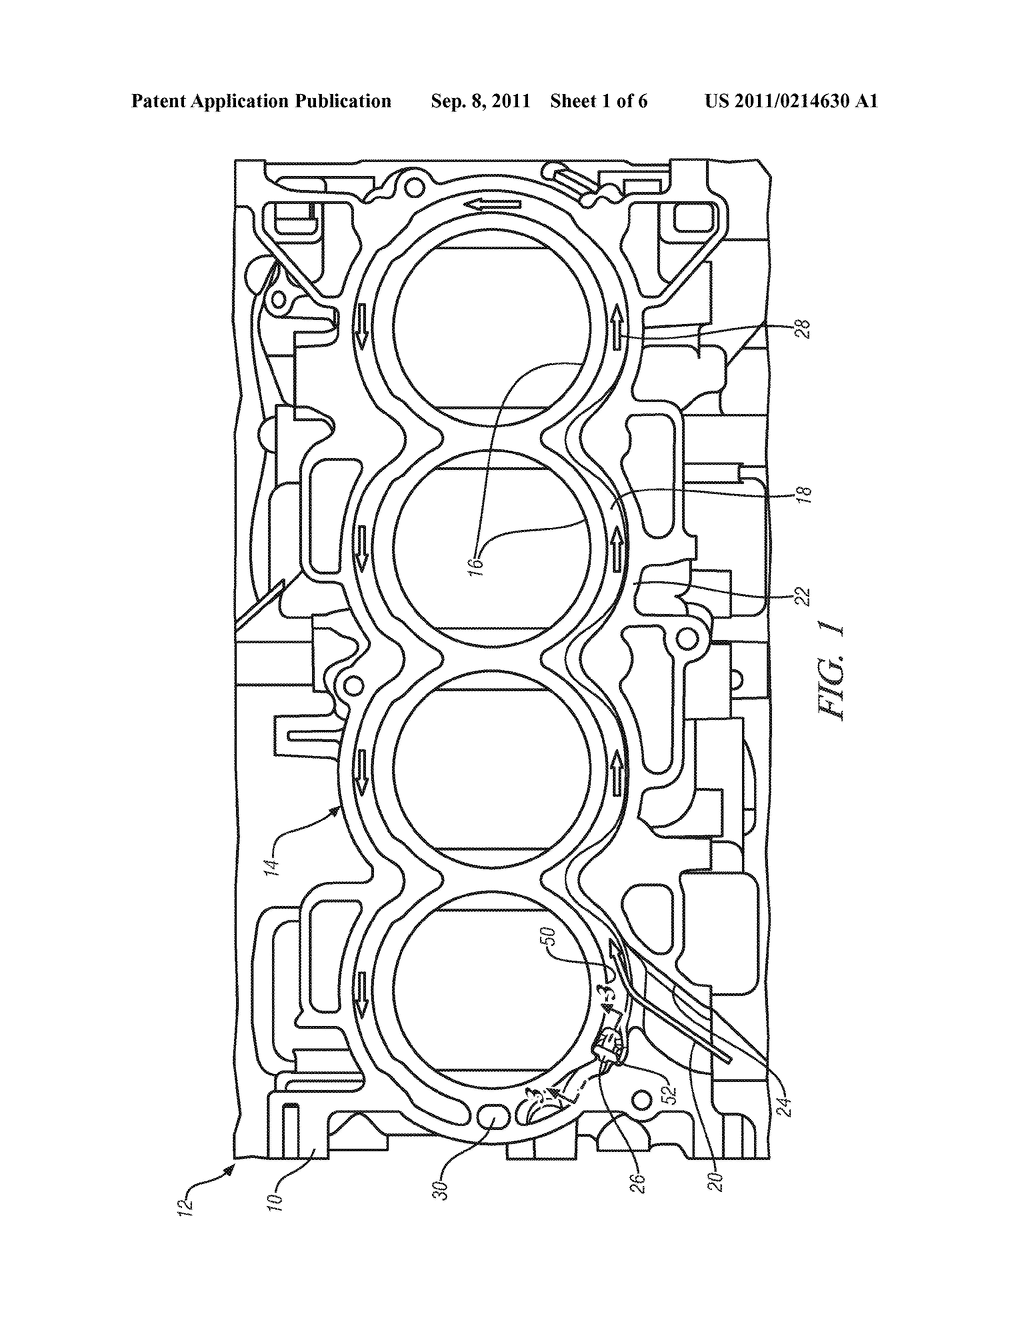 hight resolution of engine block assembly for internal combustion engine diagram schematic and image 02